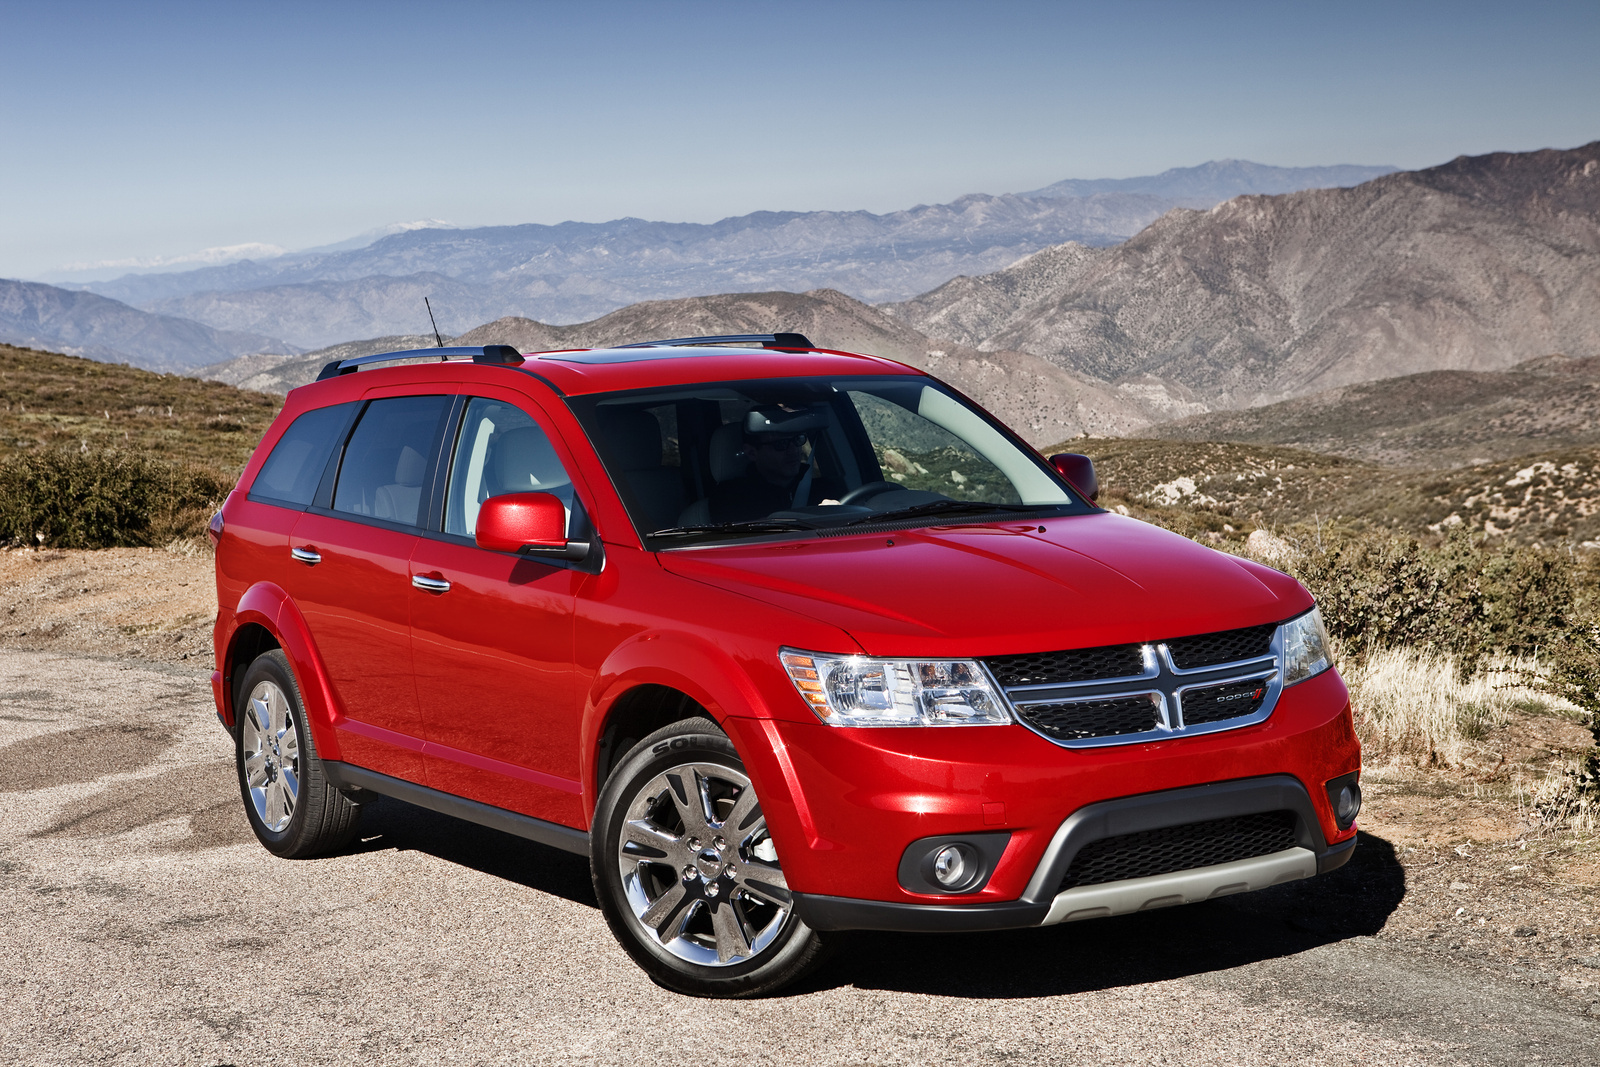 2014 Dodge Journey Test Drive Review Cargurus